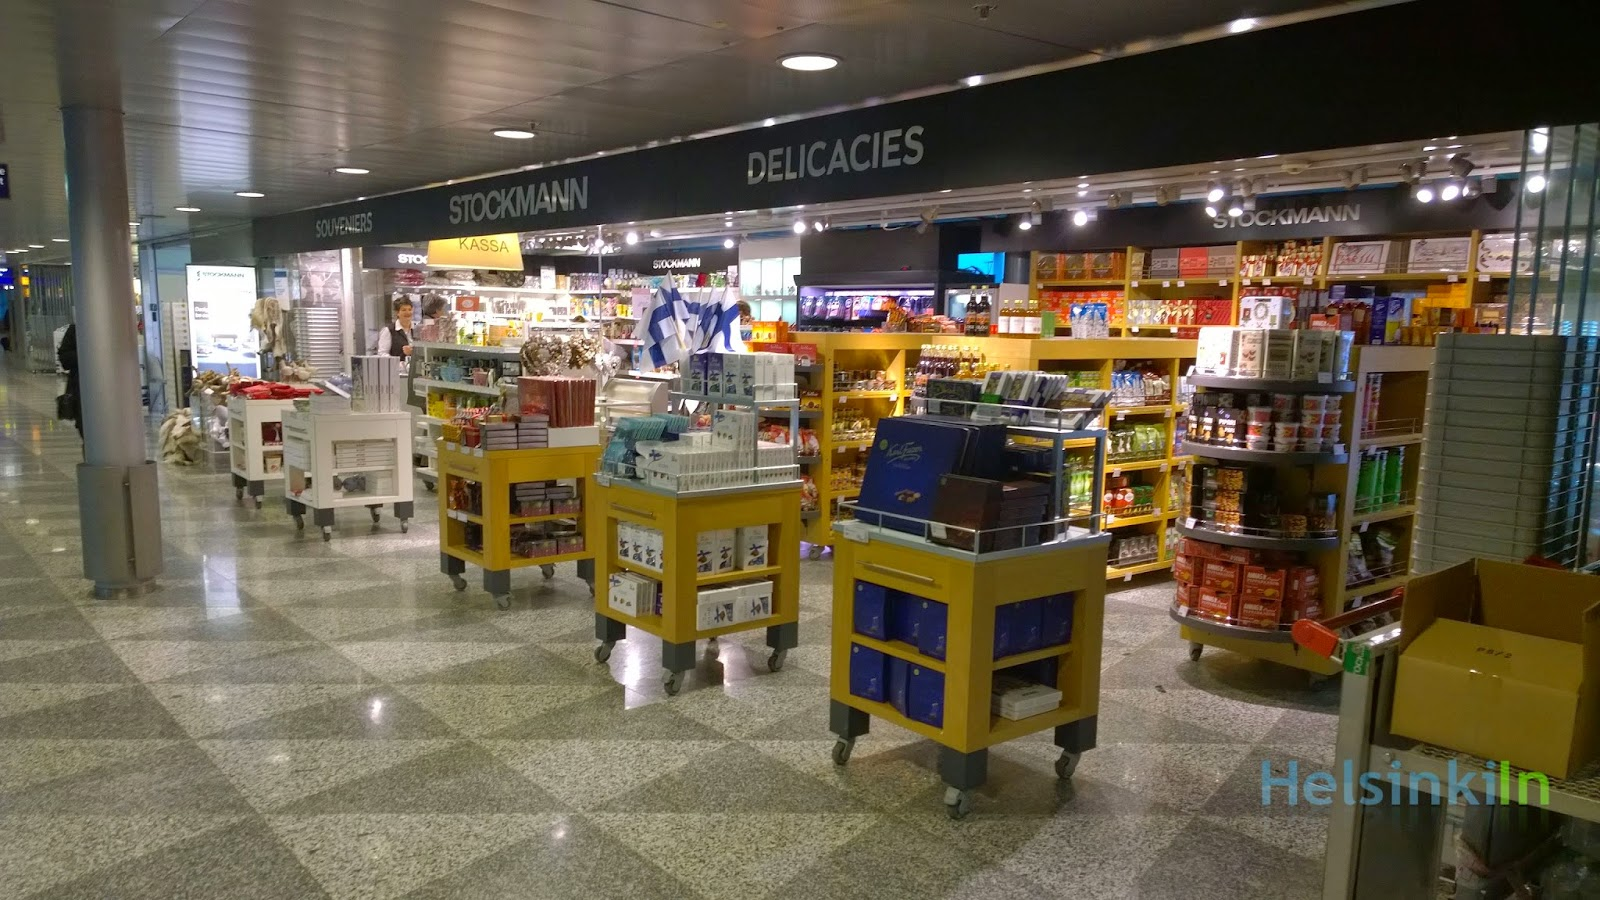 Stockmann at Helsinki Airport